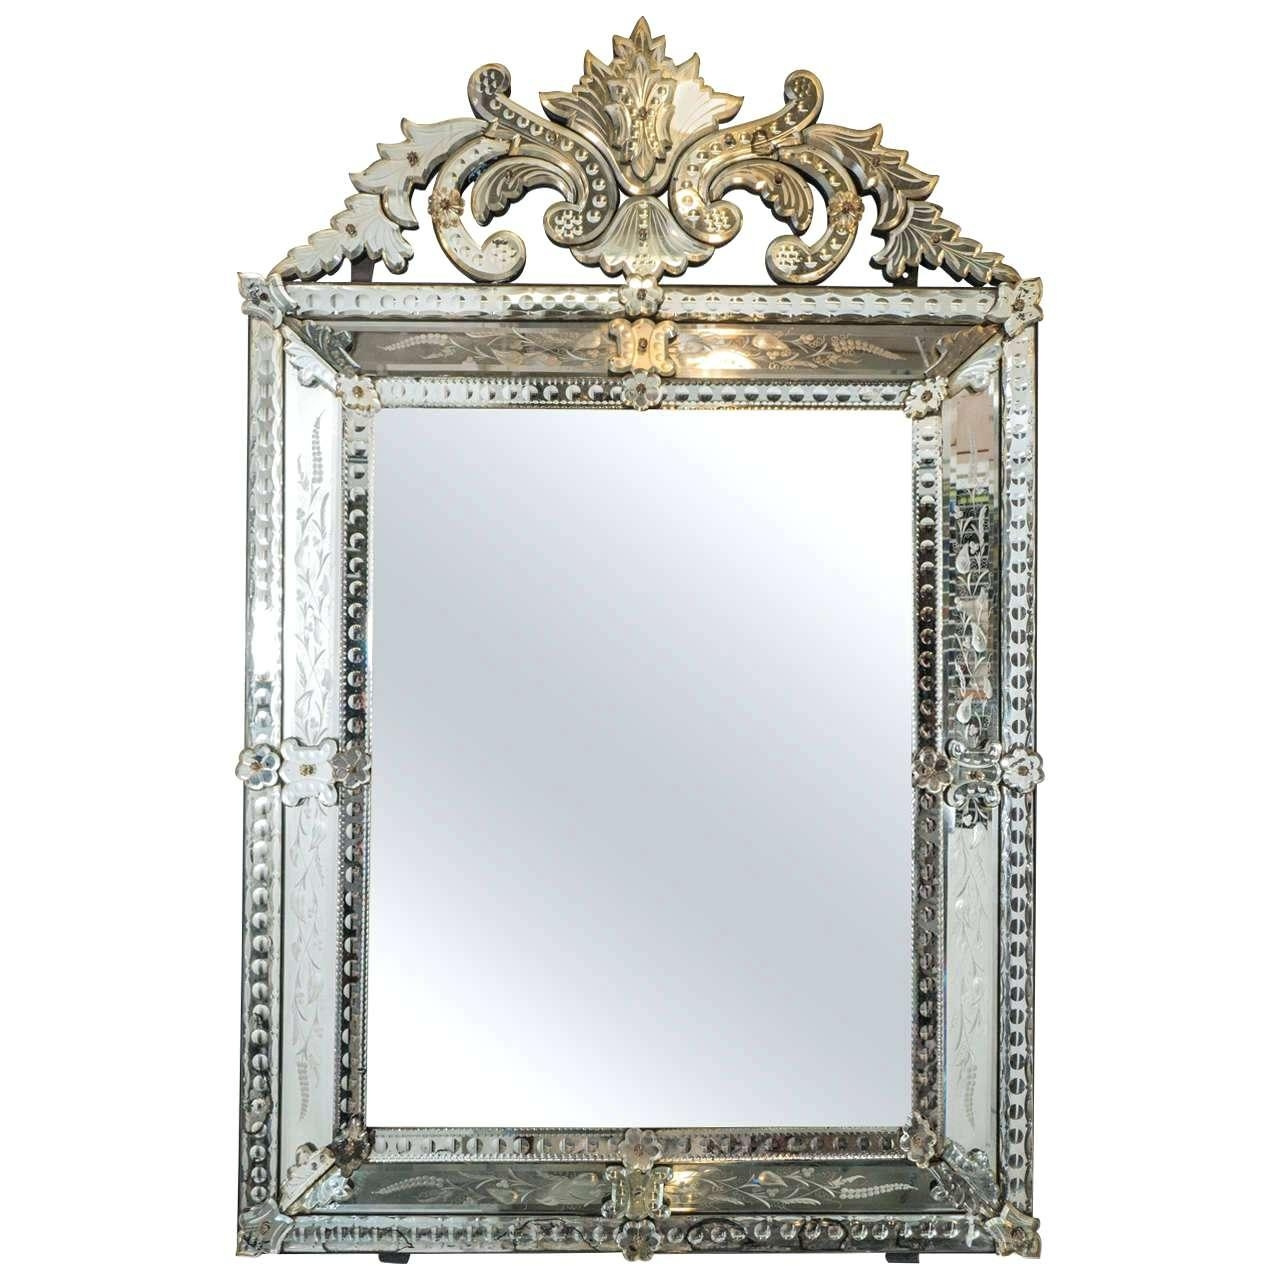 Venetian Glass Mirror With Floral And Leaf Motif Wall Etched Within Large Venetian Wall Mirror (Image 19 of 20)